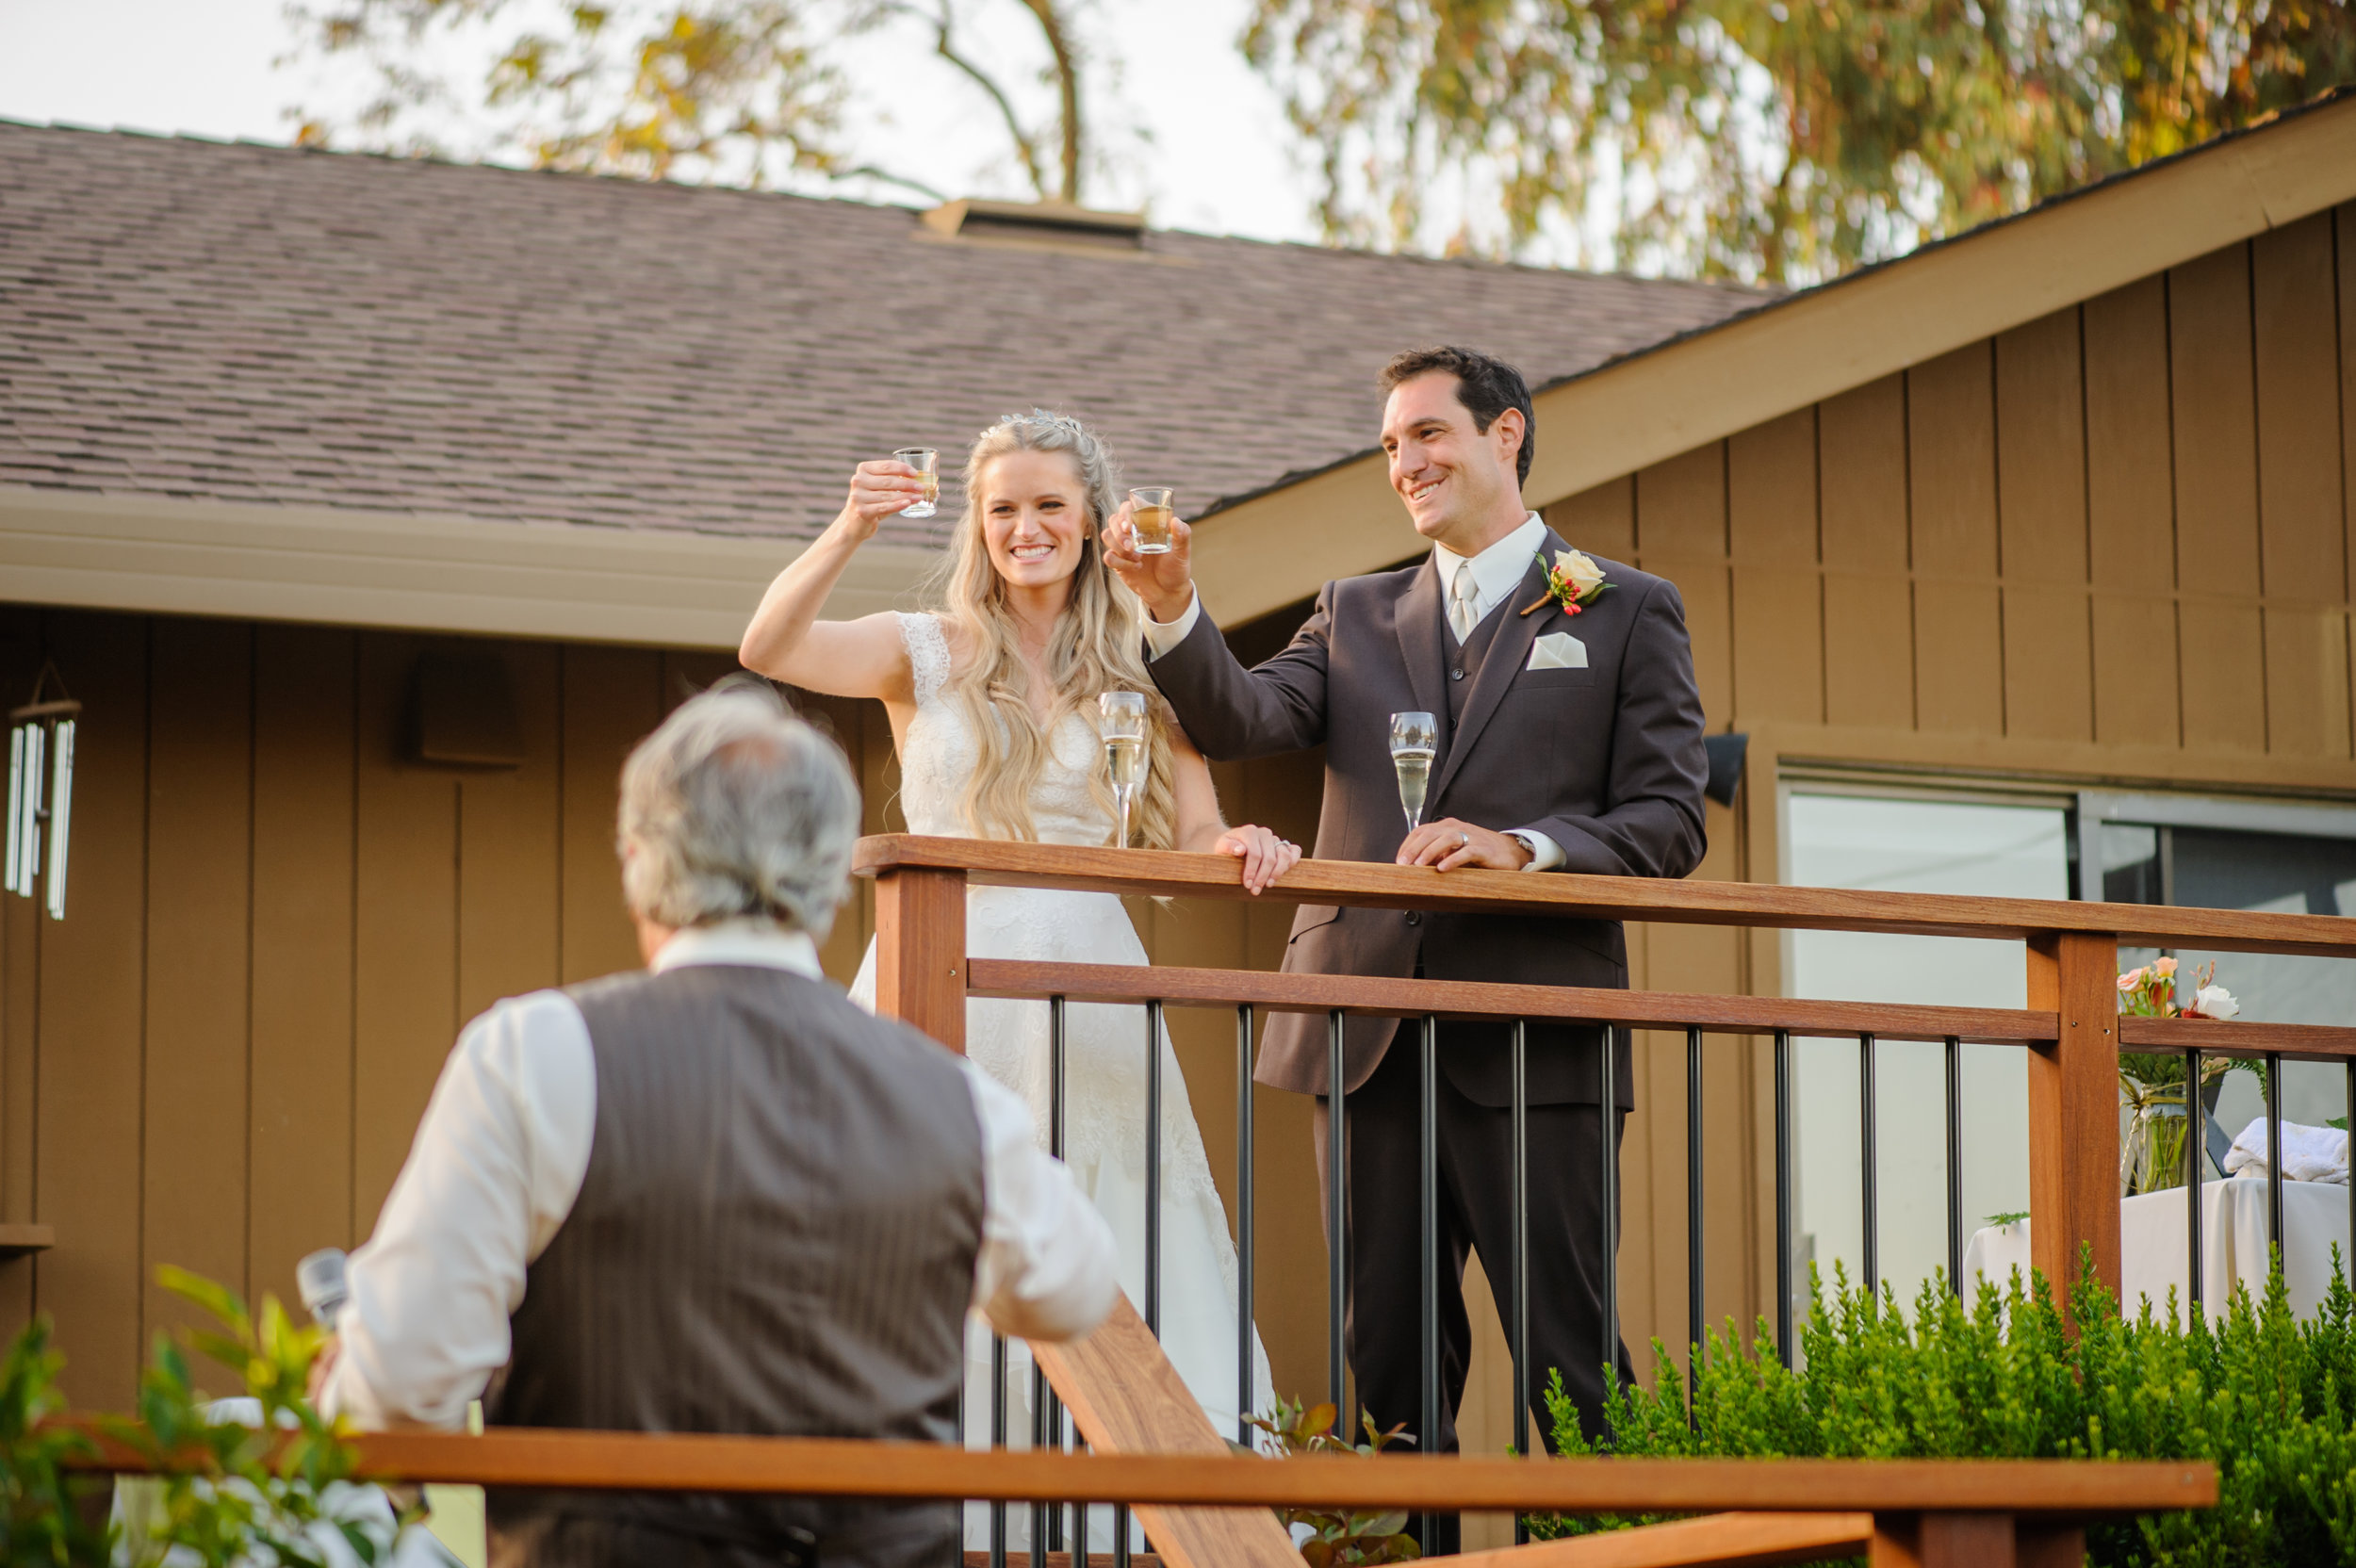 mara-chris-043-backyard-sonoma-wedding-photographer-katherine-nicole-photography.JPG